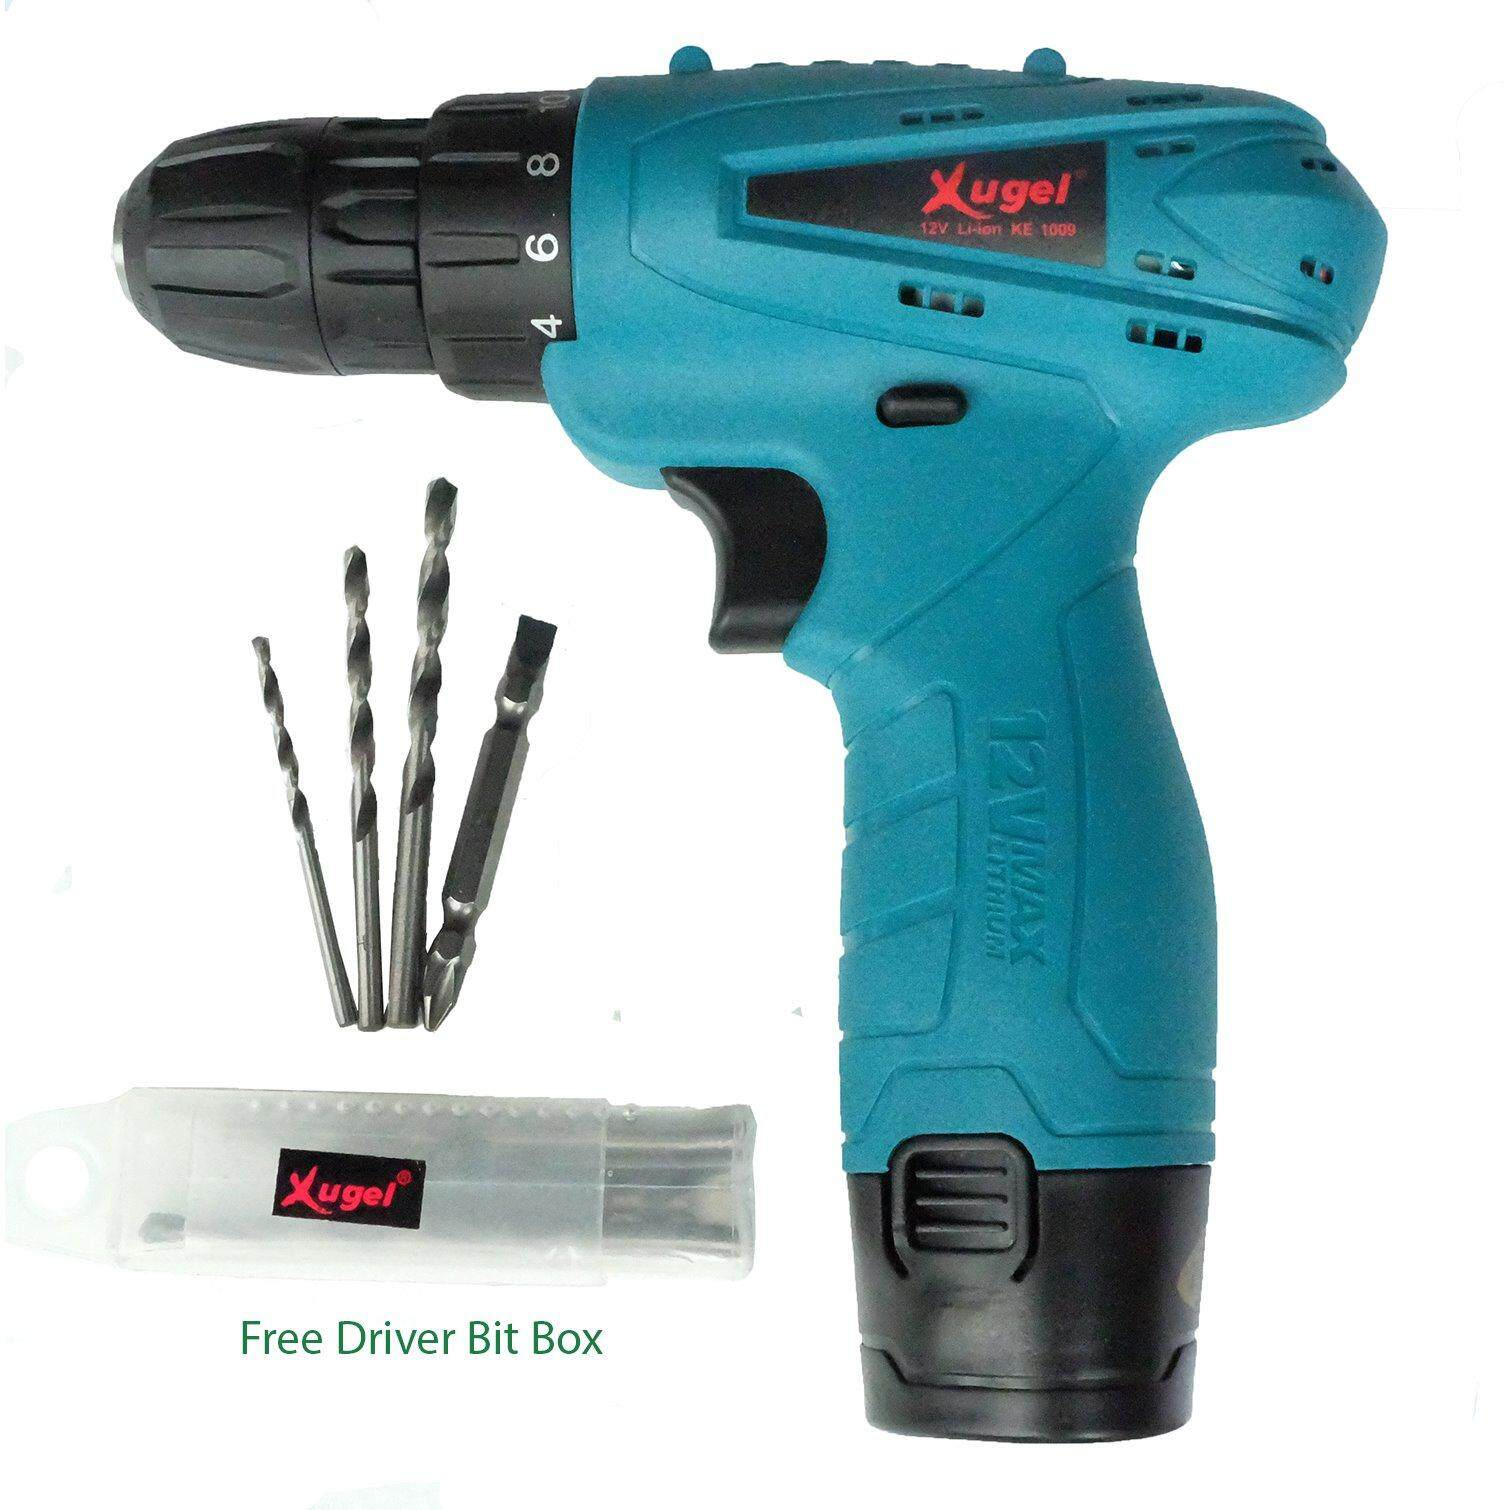 Home Drills Drivers Buy At Best Price In New Bor Listrik 10mm Nrt Pro Xugel Ke1009 12v Lithium Battery Cordless Drill With Free Driver Bits